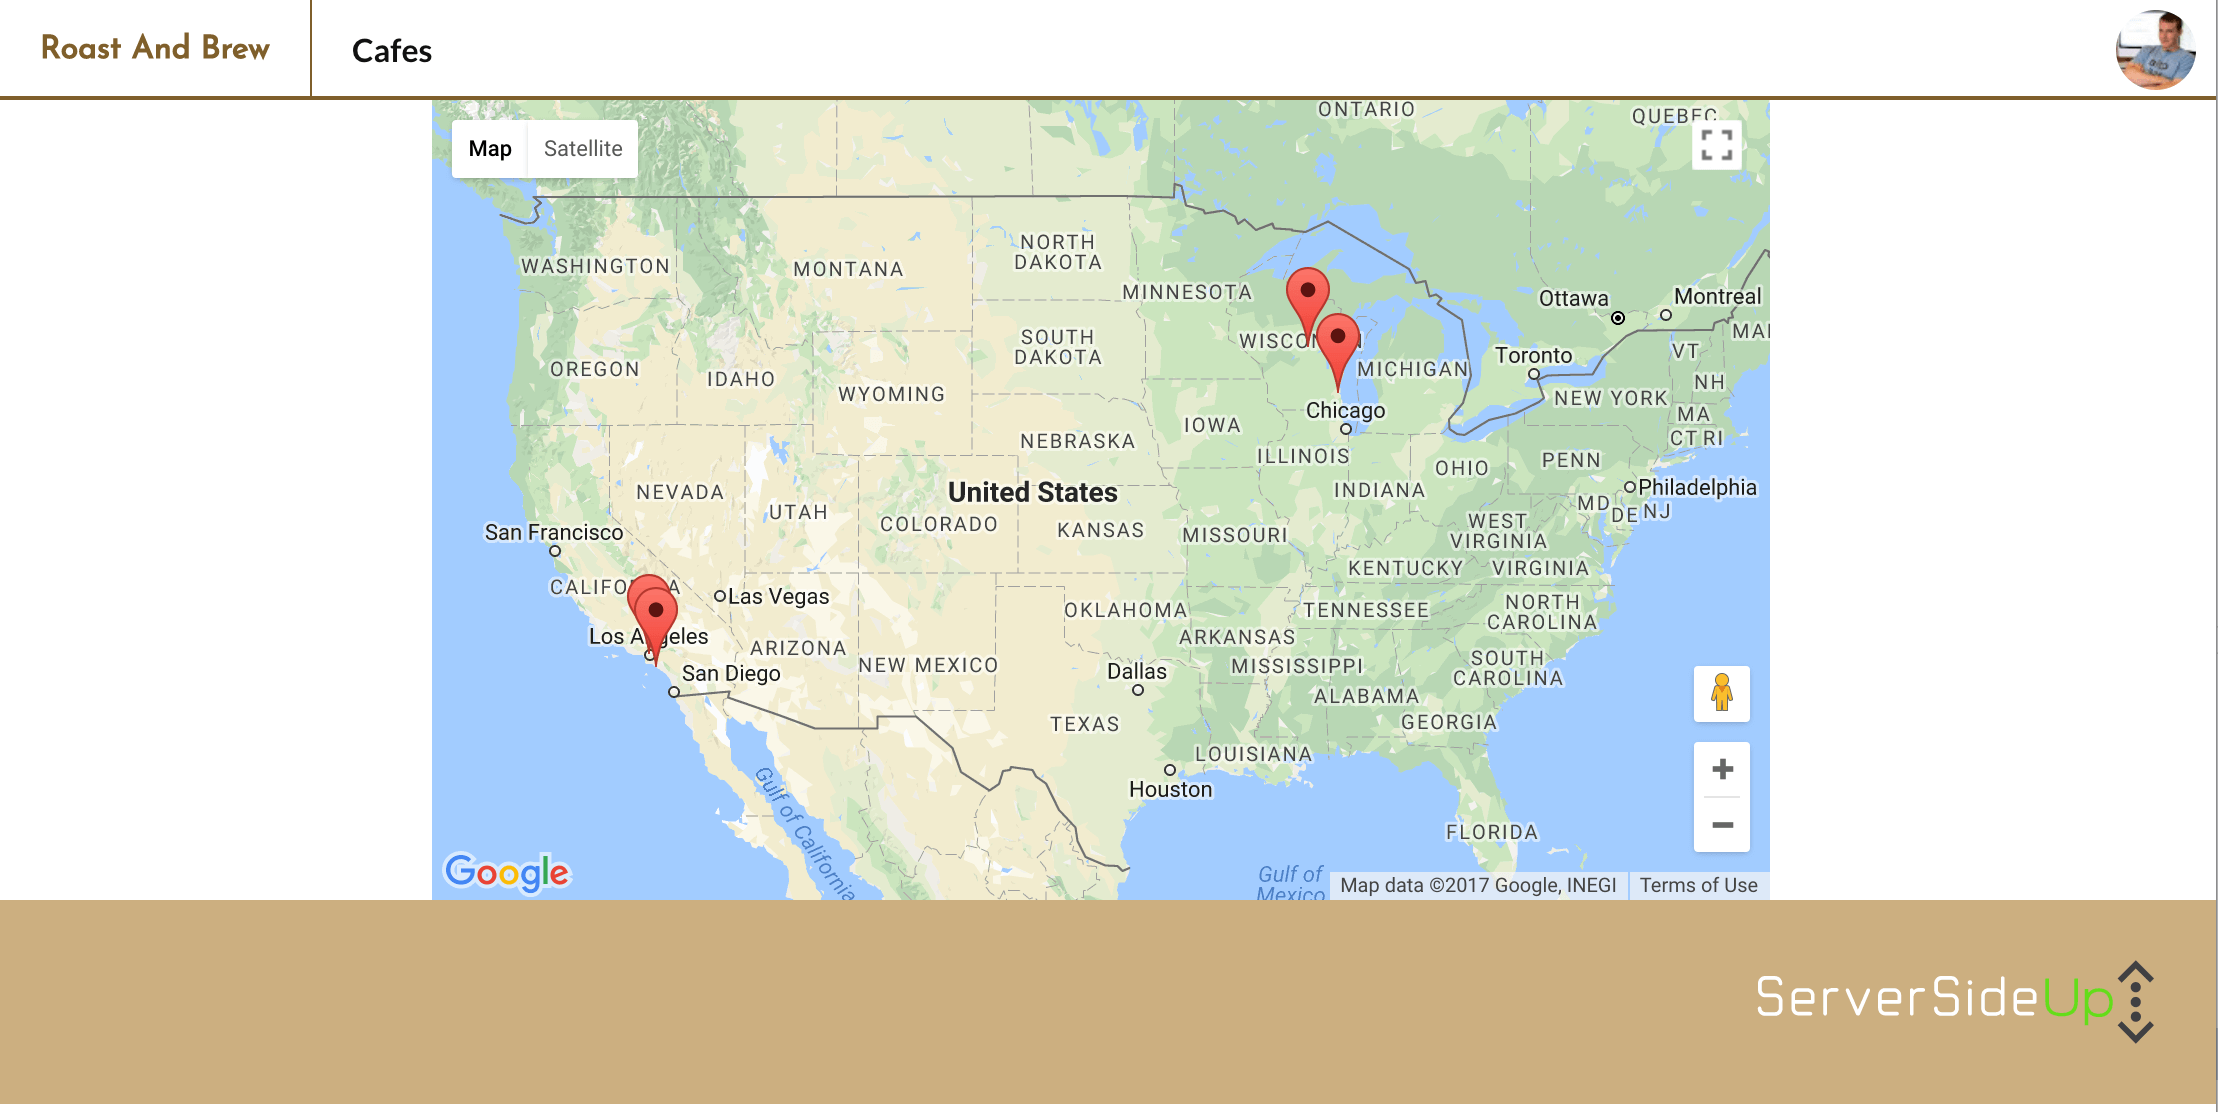 Displaying Resources on a Google Map With Vue JS - Server Side Up